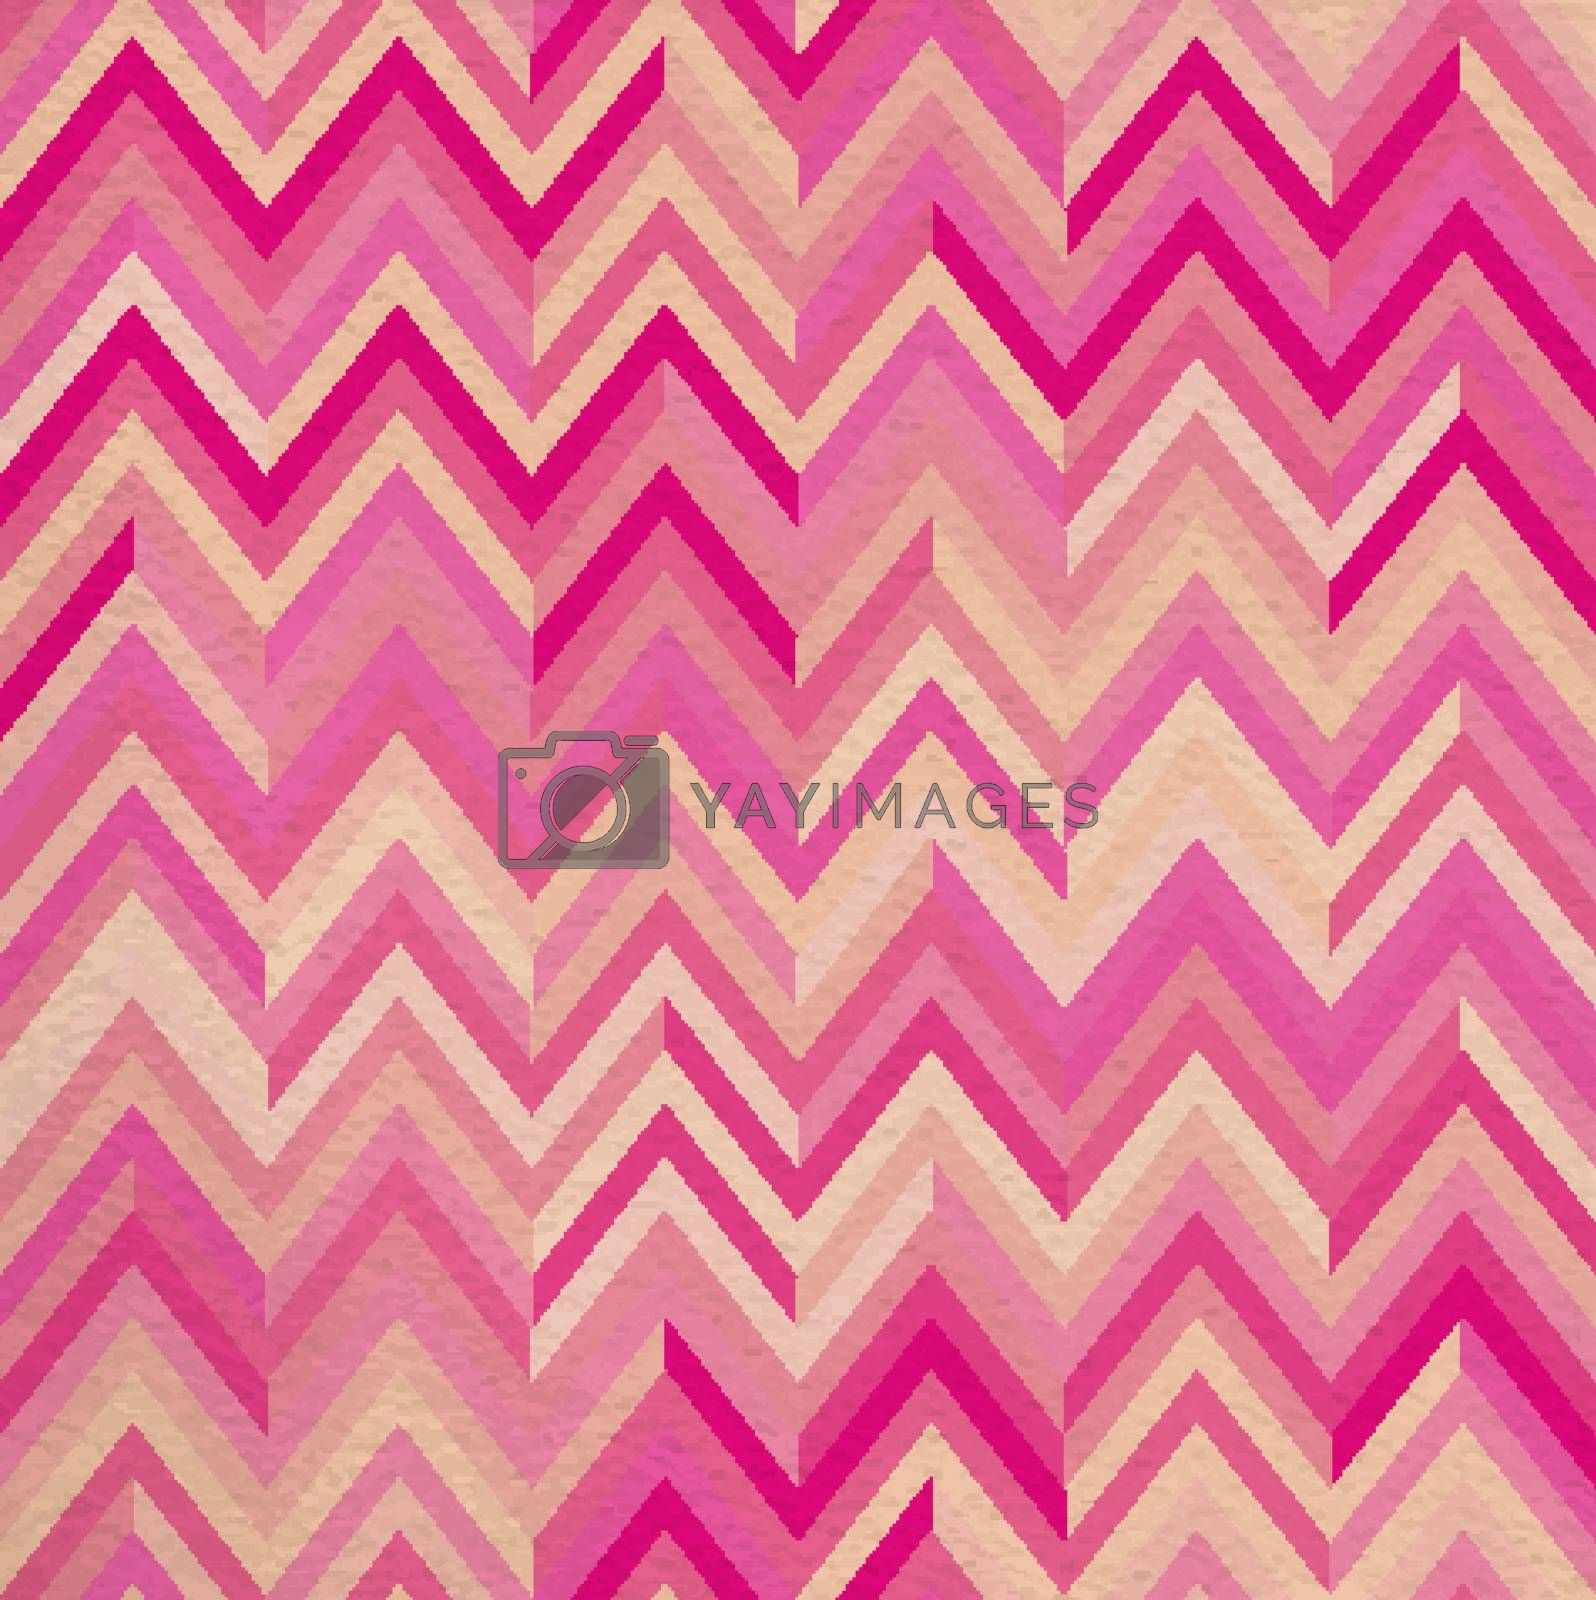 Geometric abstract pink vintage retro seamless pattern zigzag background. Ideal for fabric, wrapping paper, or print. EPS10 vector file.